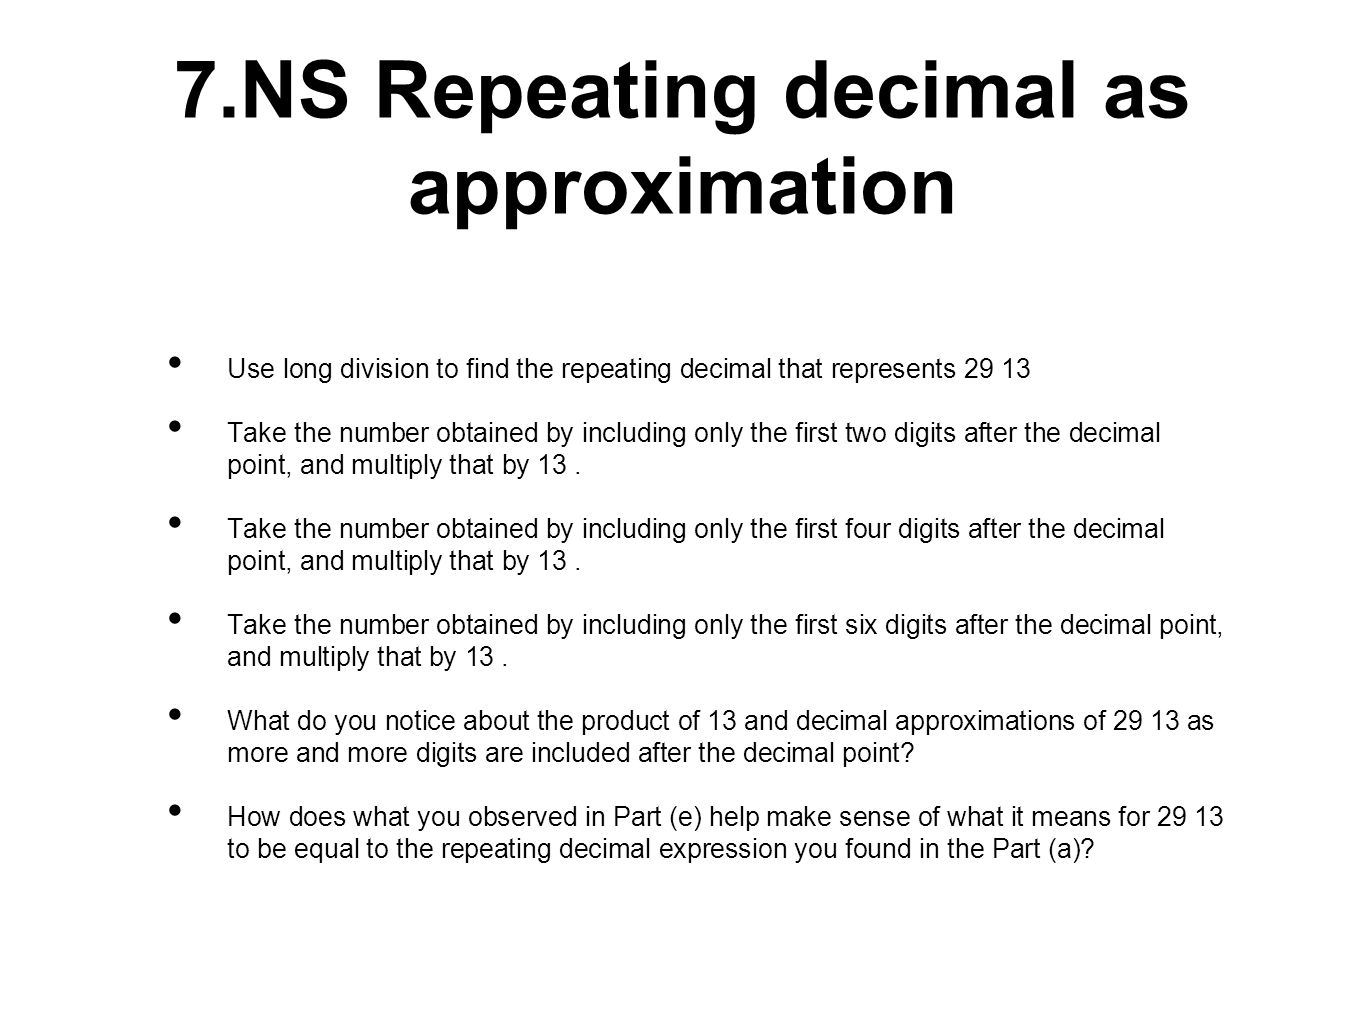 7.NS Repeating decimal as approximation